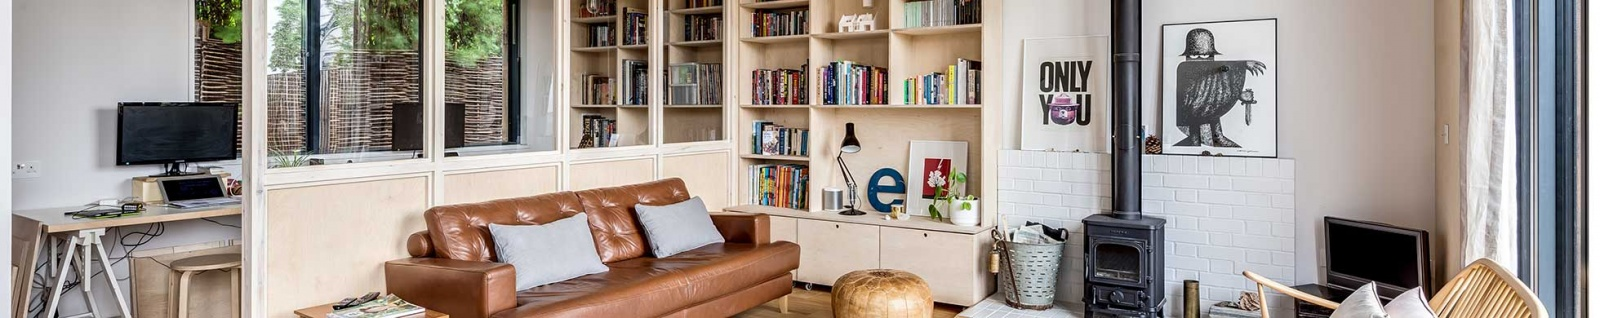 living room in a modern self build with woodburning stove and bookshelves